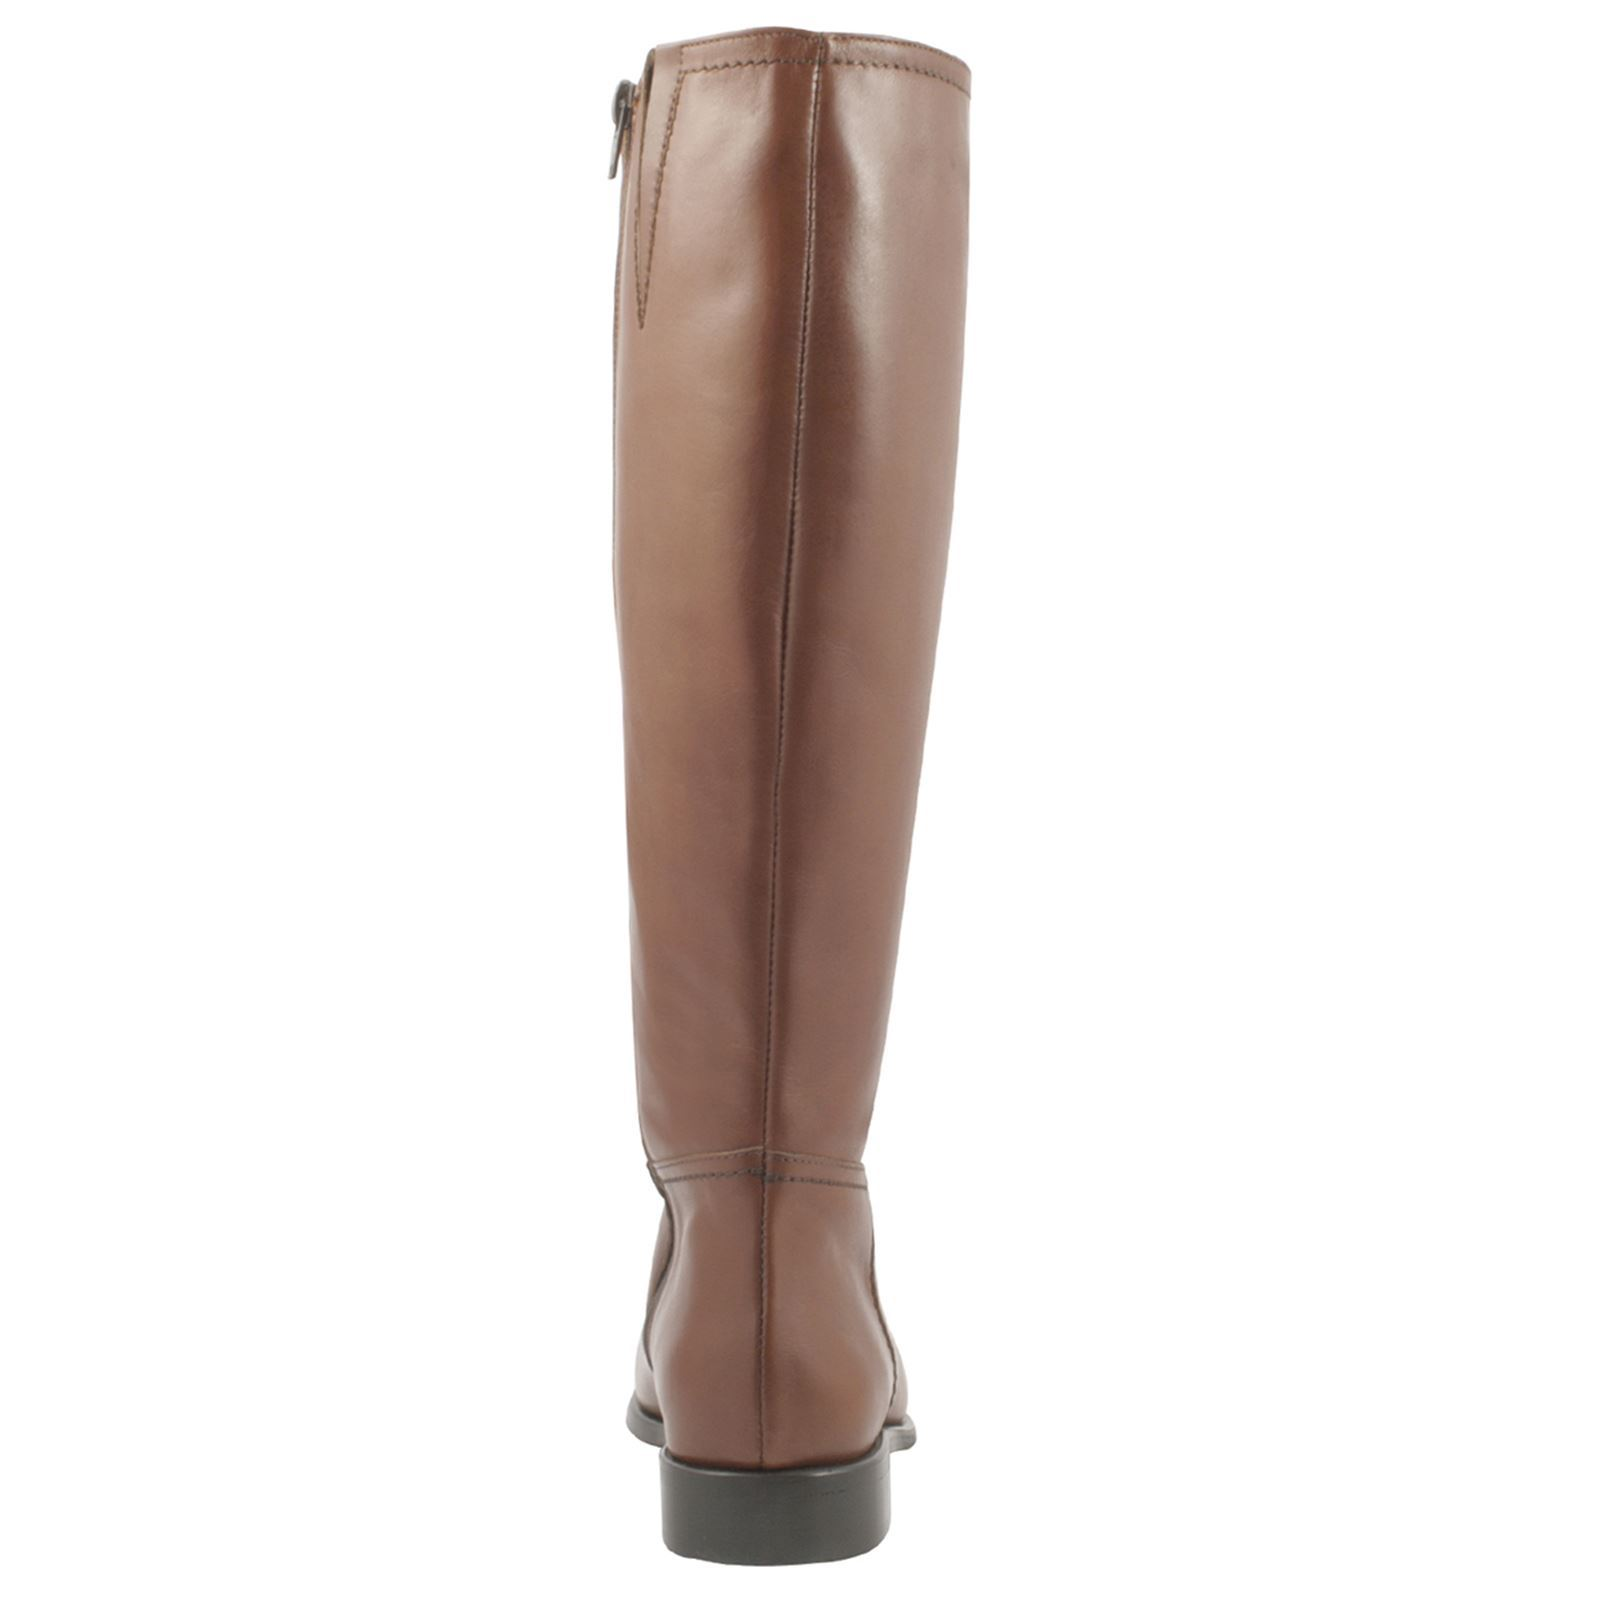 Bottes Brandalley Paris Marron Cuir En Exclusif Amazone T6qxAPz